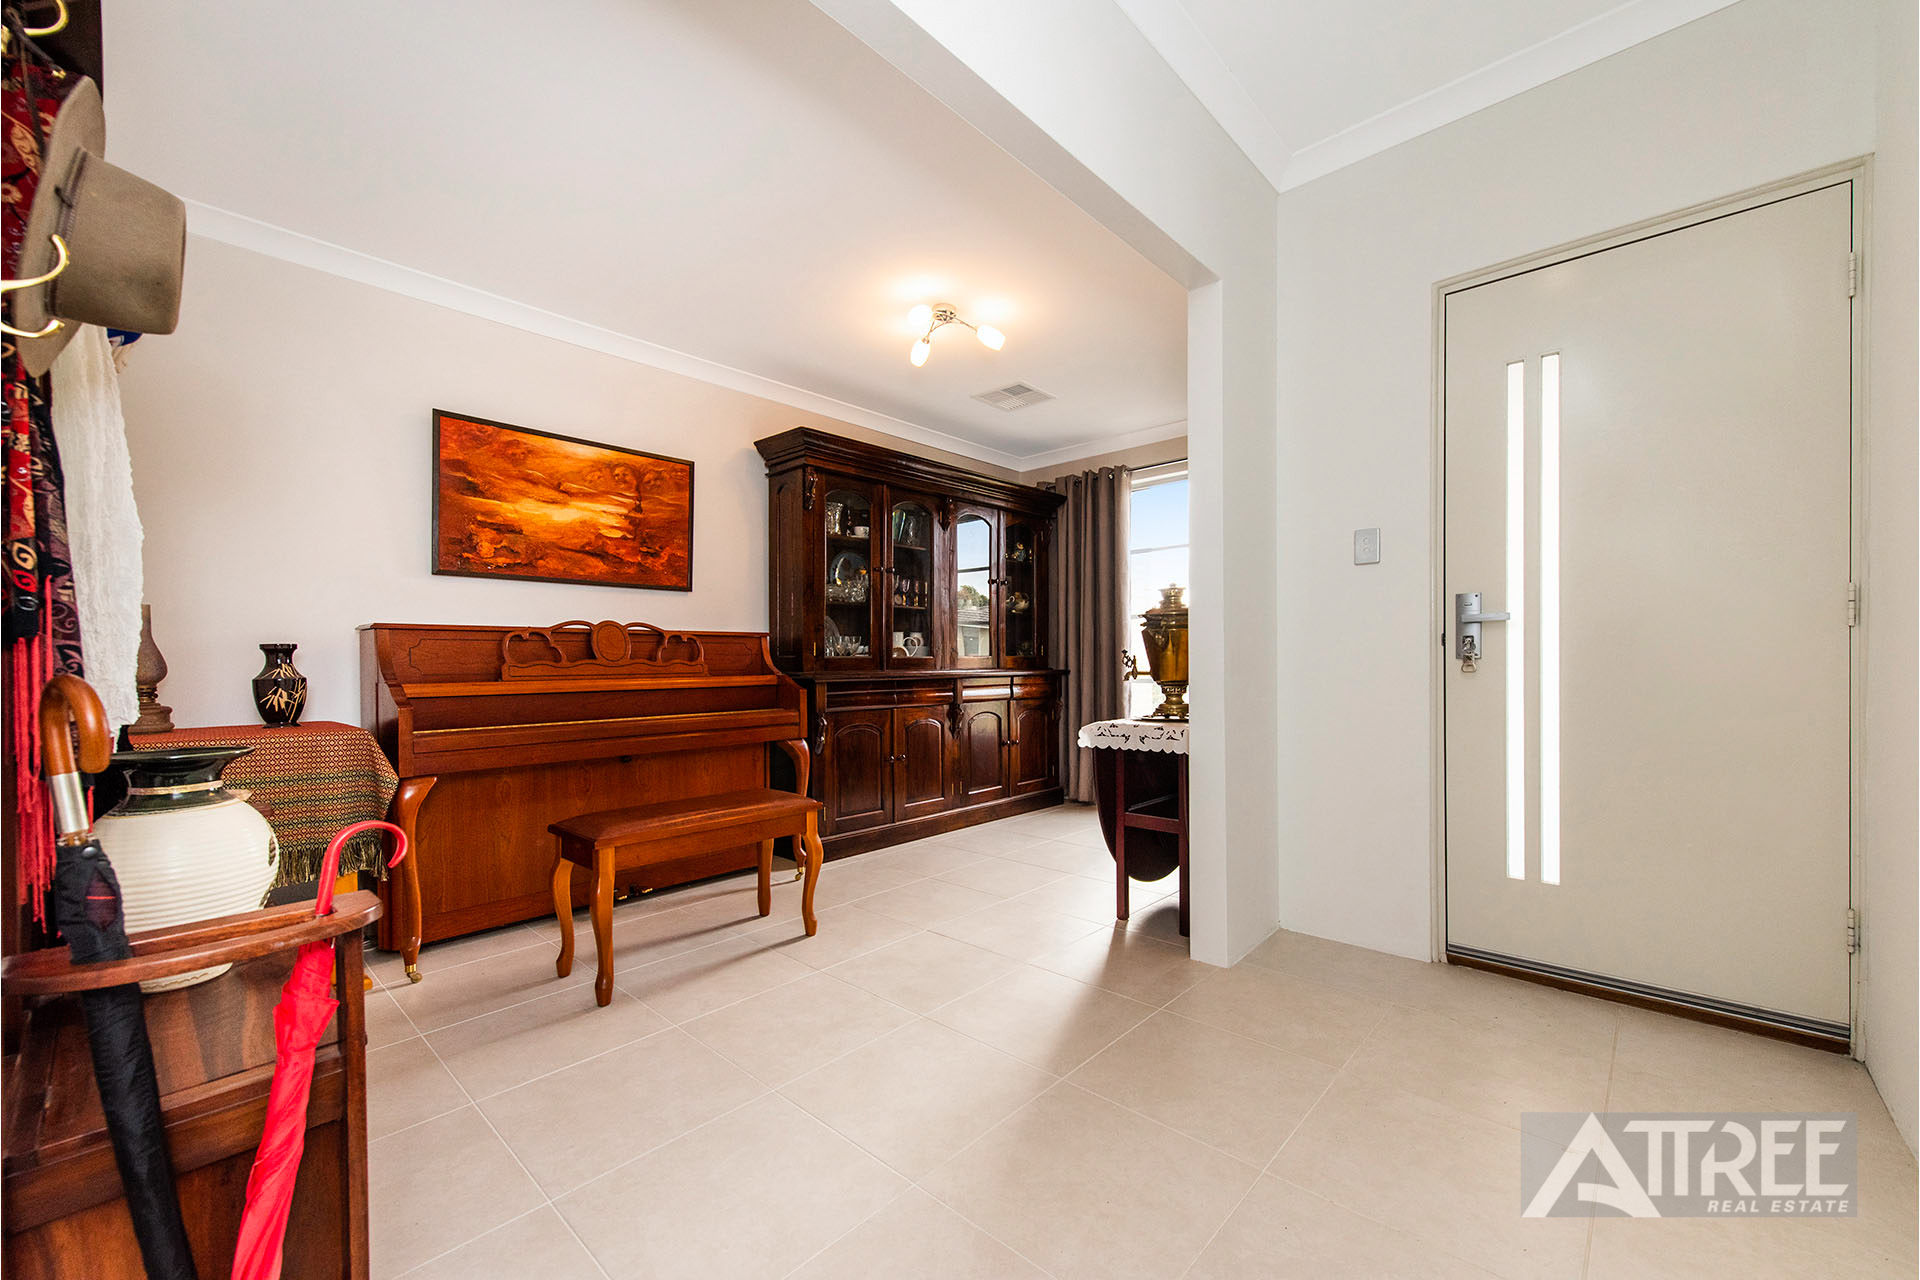 Property for sale in PIARA WATERS, 7 Isla Place : Attree Real Estate